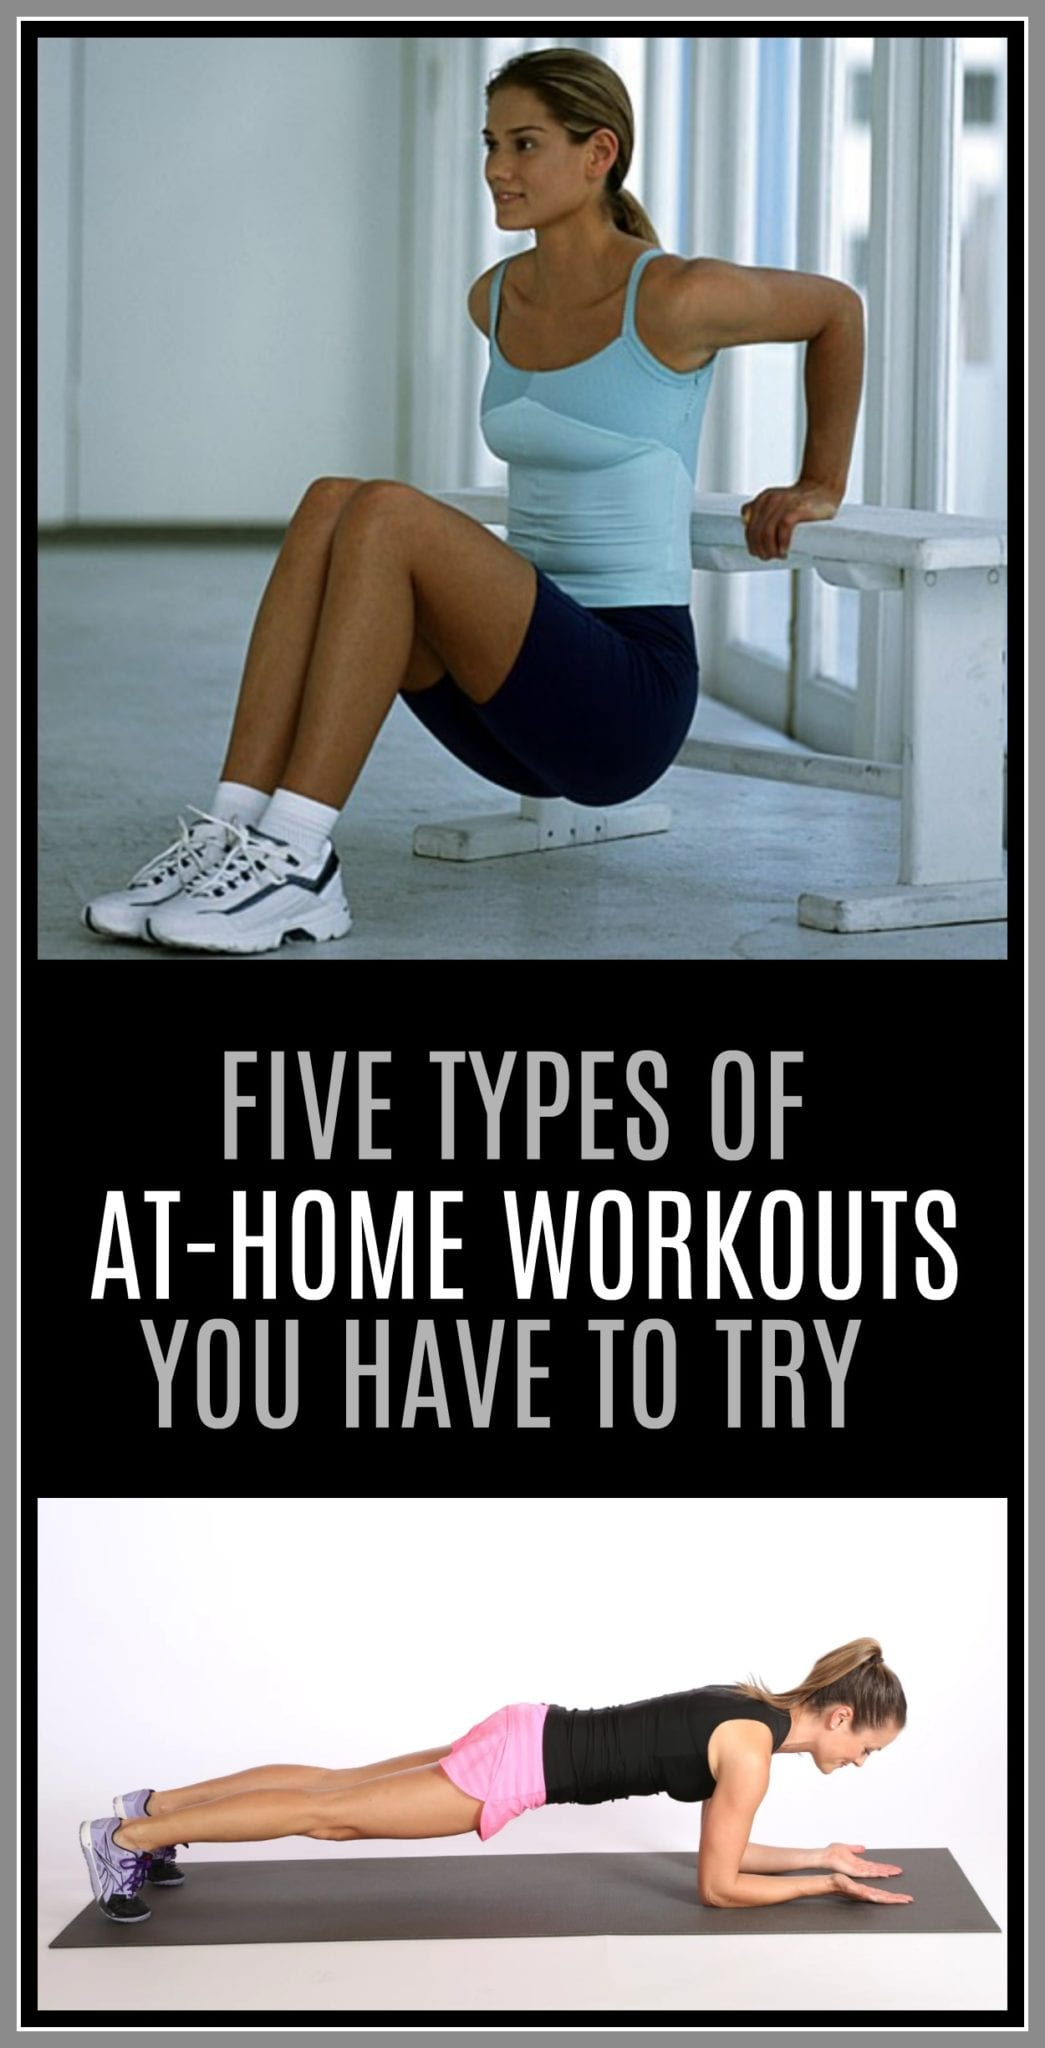 at home workouts for beginners at home workouts for men at home workout plan workout at home without equipment home exercises to lose weight 30 minute workout at home best home workout program home workouts without weights